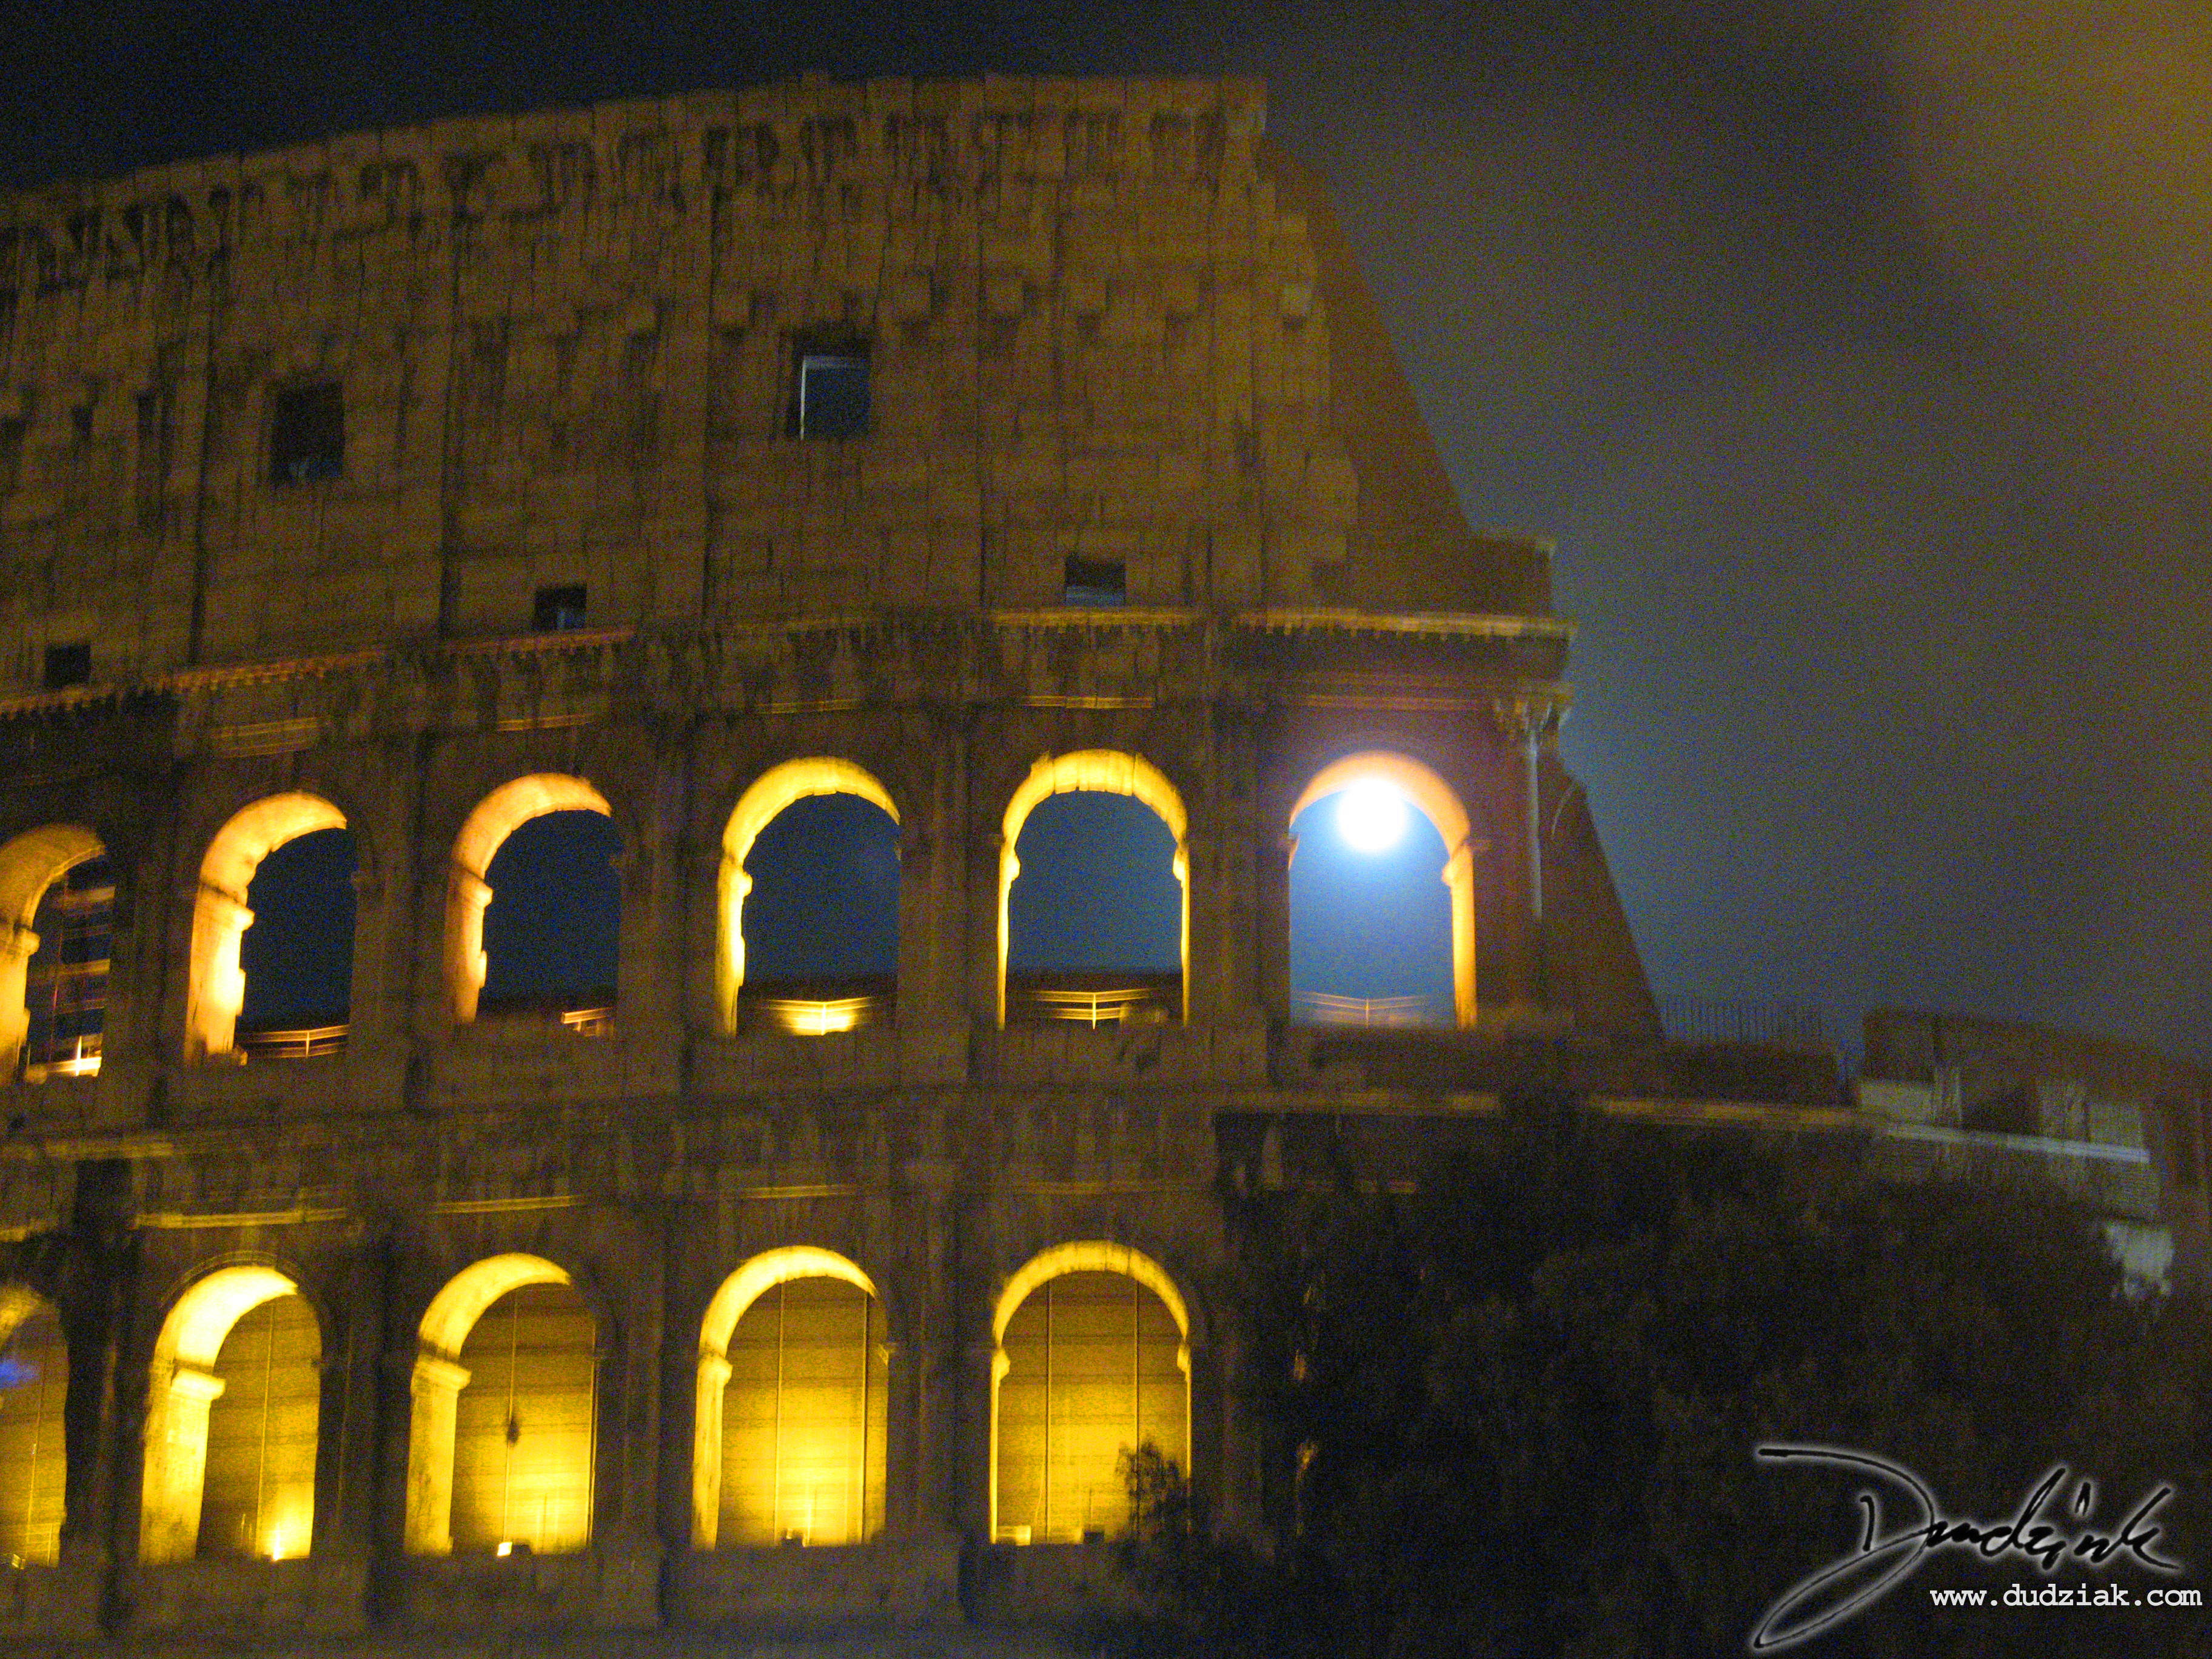 Colosseum,  Roma,  Italy,  Roman Colosseum,  night,  Flavian Amphitheatre,  Roman Arch,  moon,  Rome,  moonlight